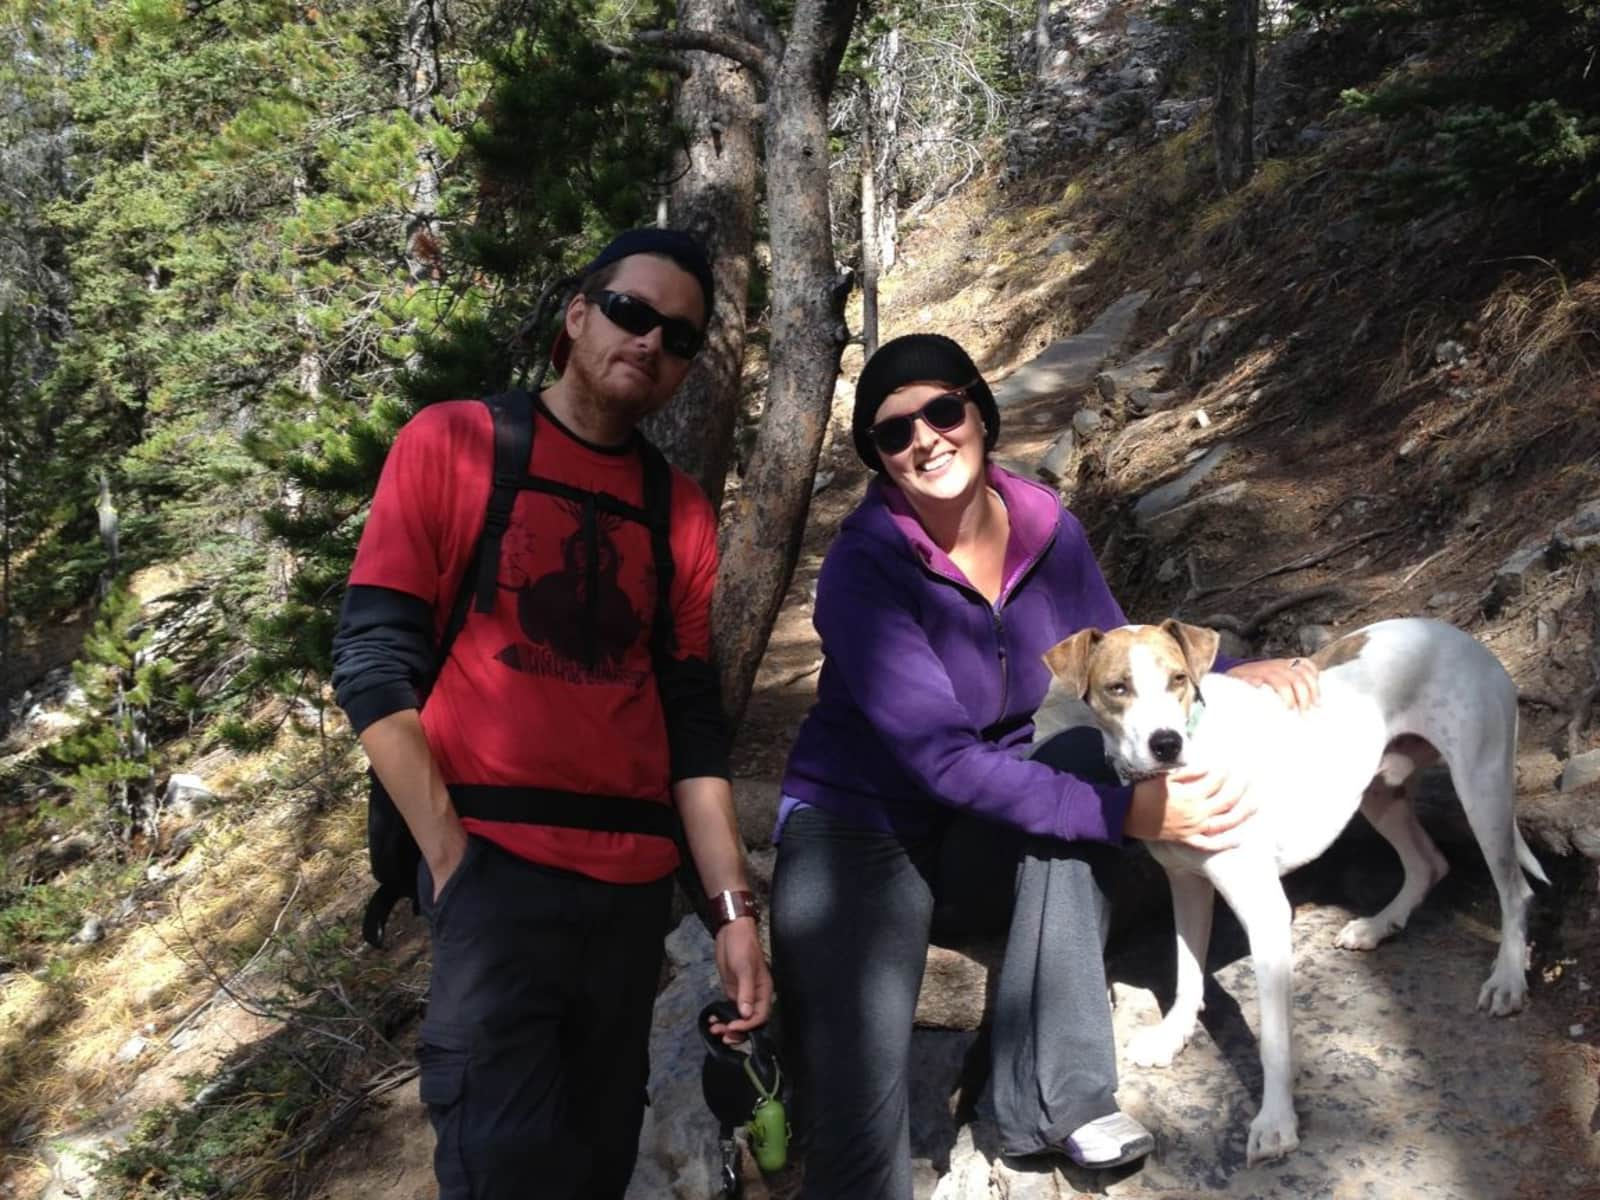 Lisa & Mitch from Calgary, Alberta, Canada